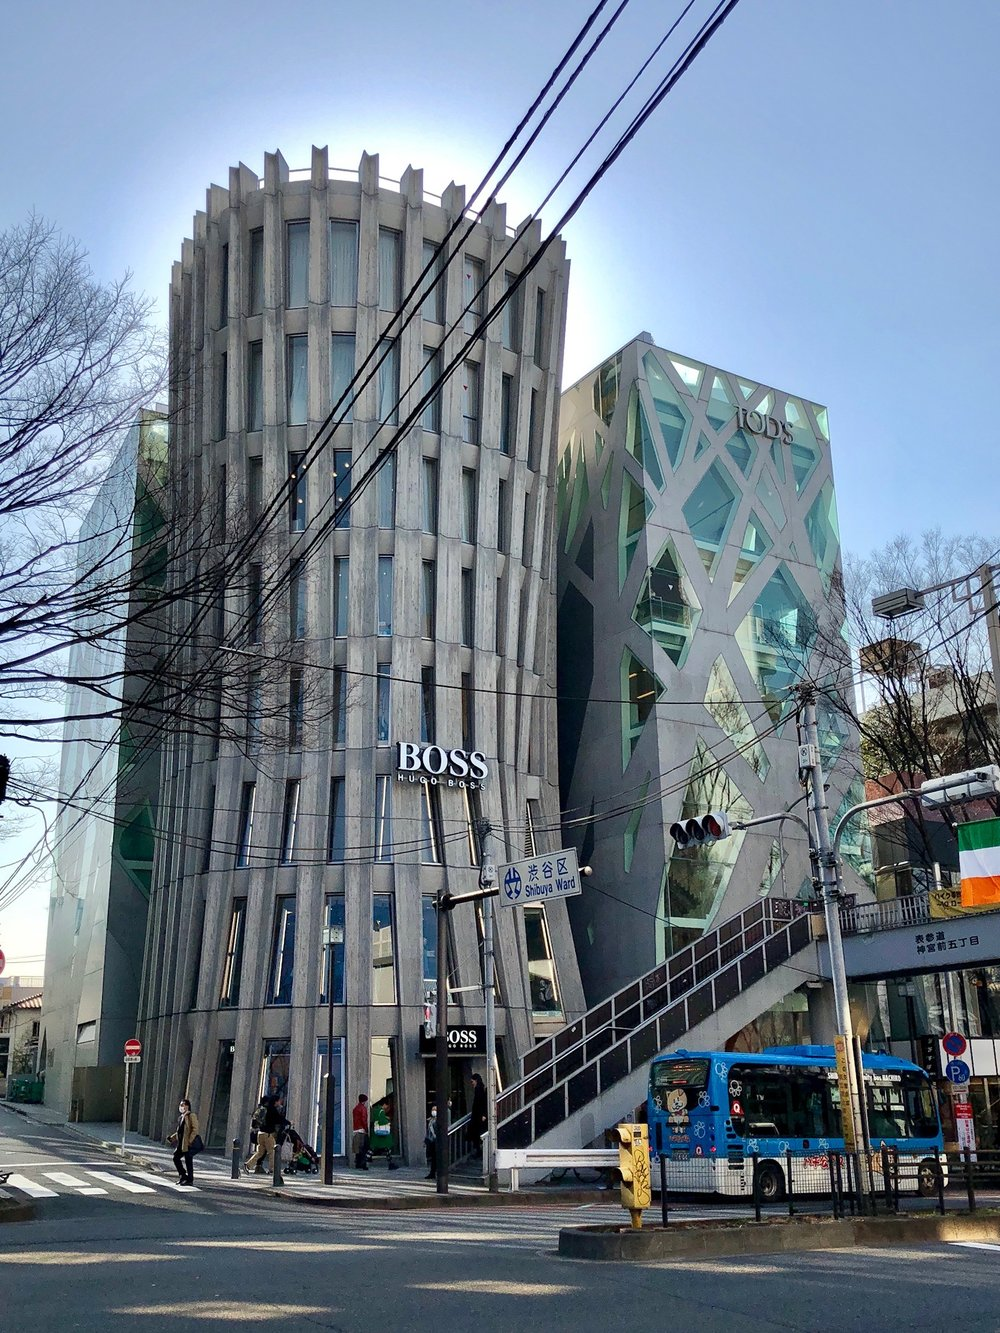 Al took this great photo wandering around in a high end shopping area between Harajuku and Shibuya called Omotesandō Hills